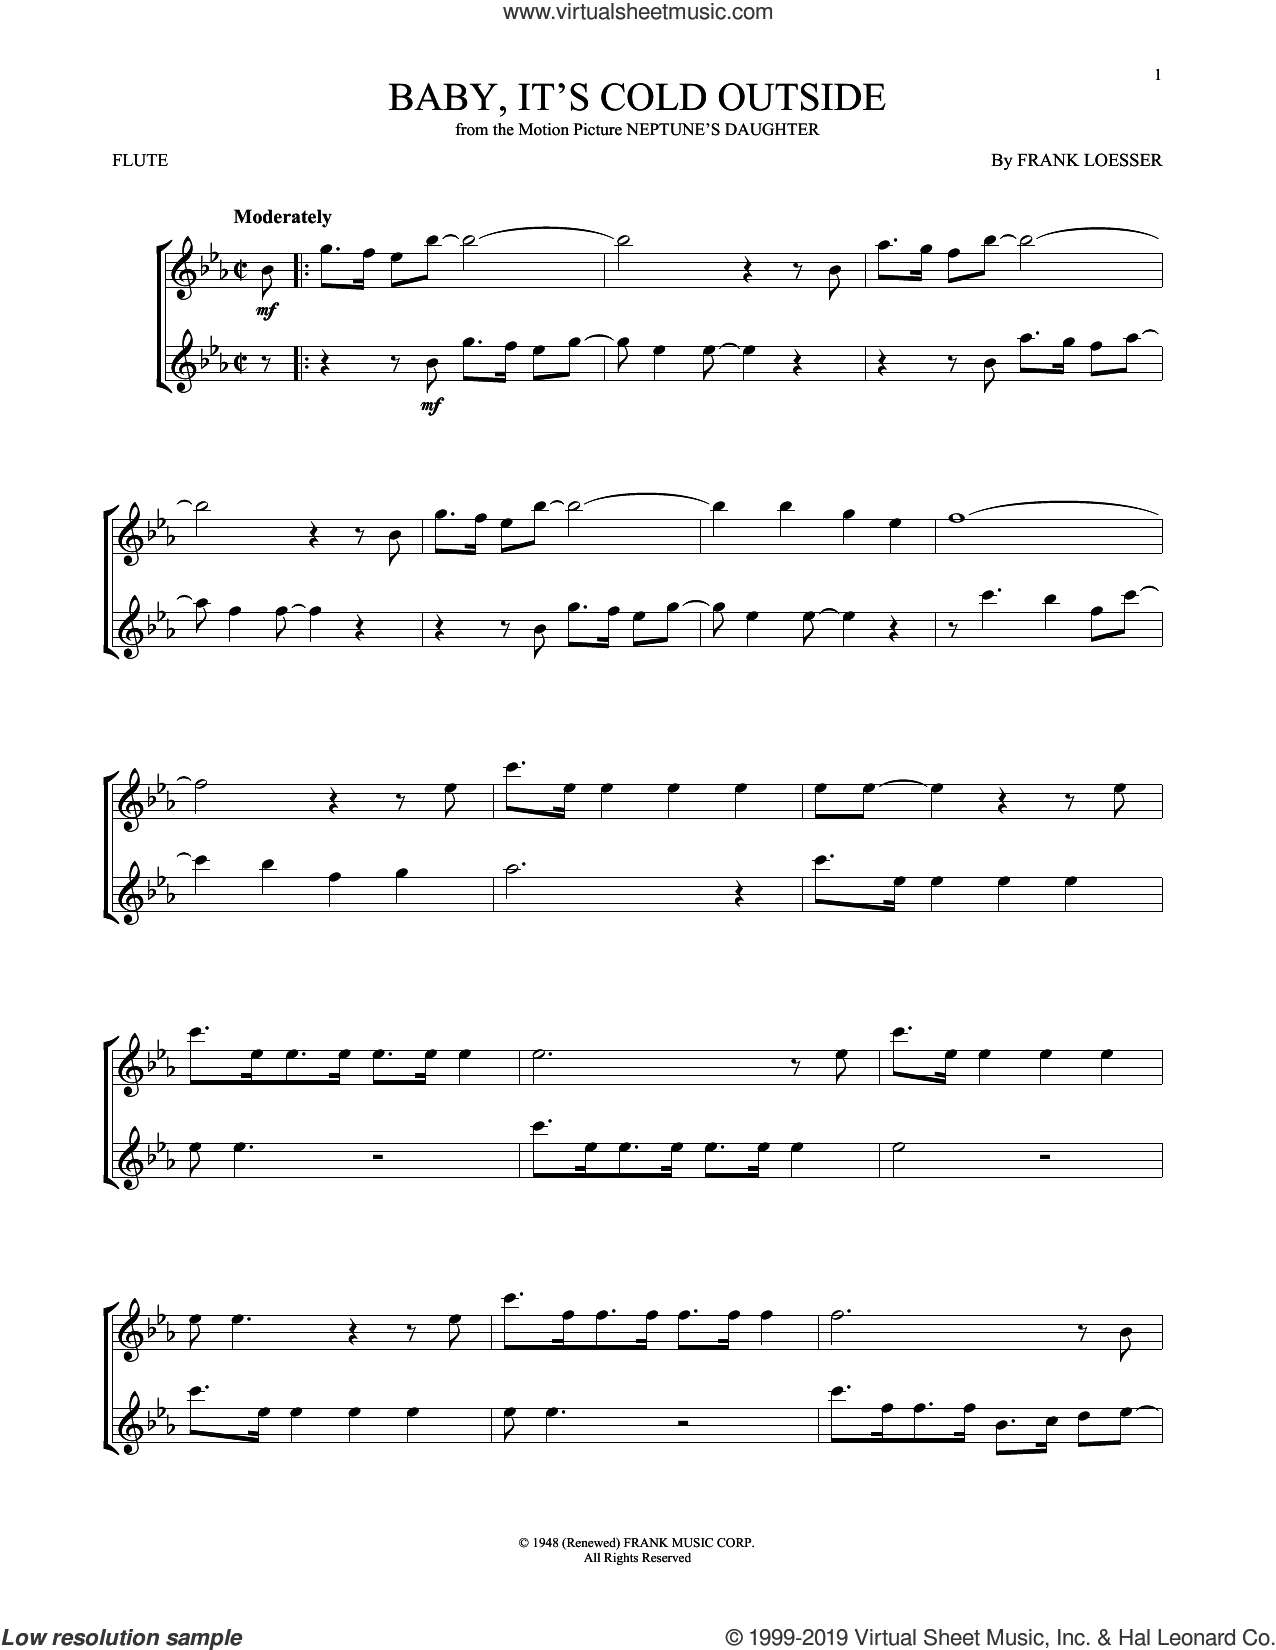 Baby, It's Cold Outside sheet music for flute solo by Frank Loesser, intermediate skill level